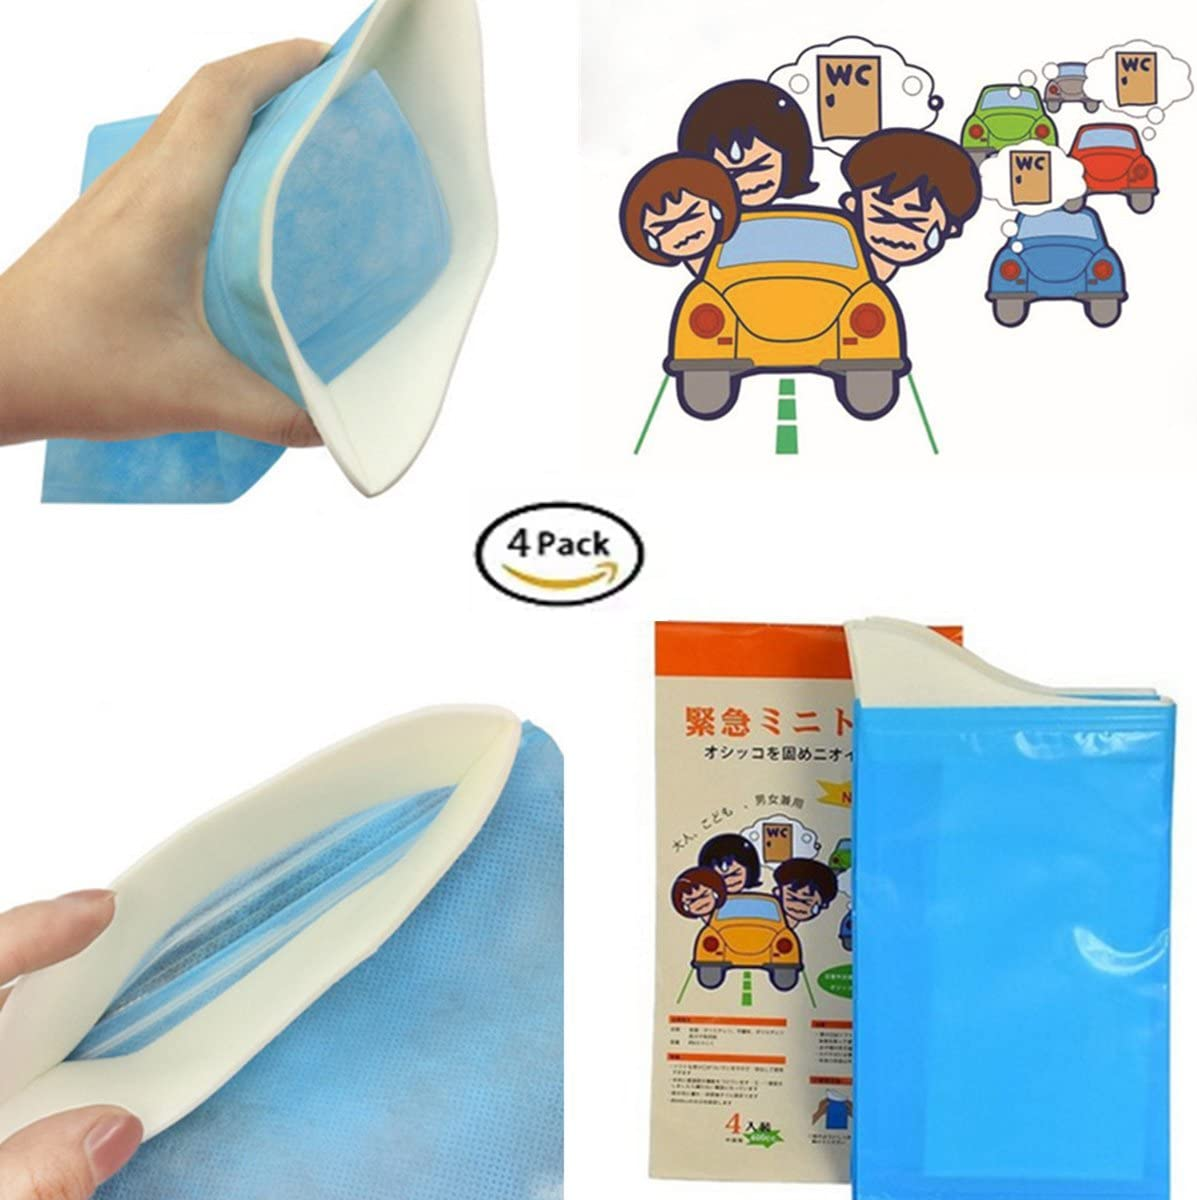 10Pcs Disposable Urine Bags Portable Camping Outdoor Travel Emergency Toilet QN